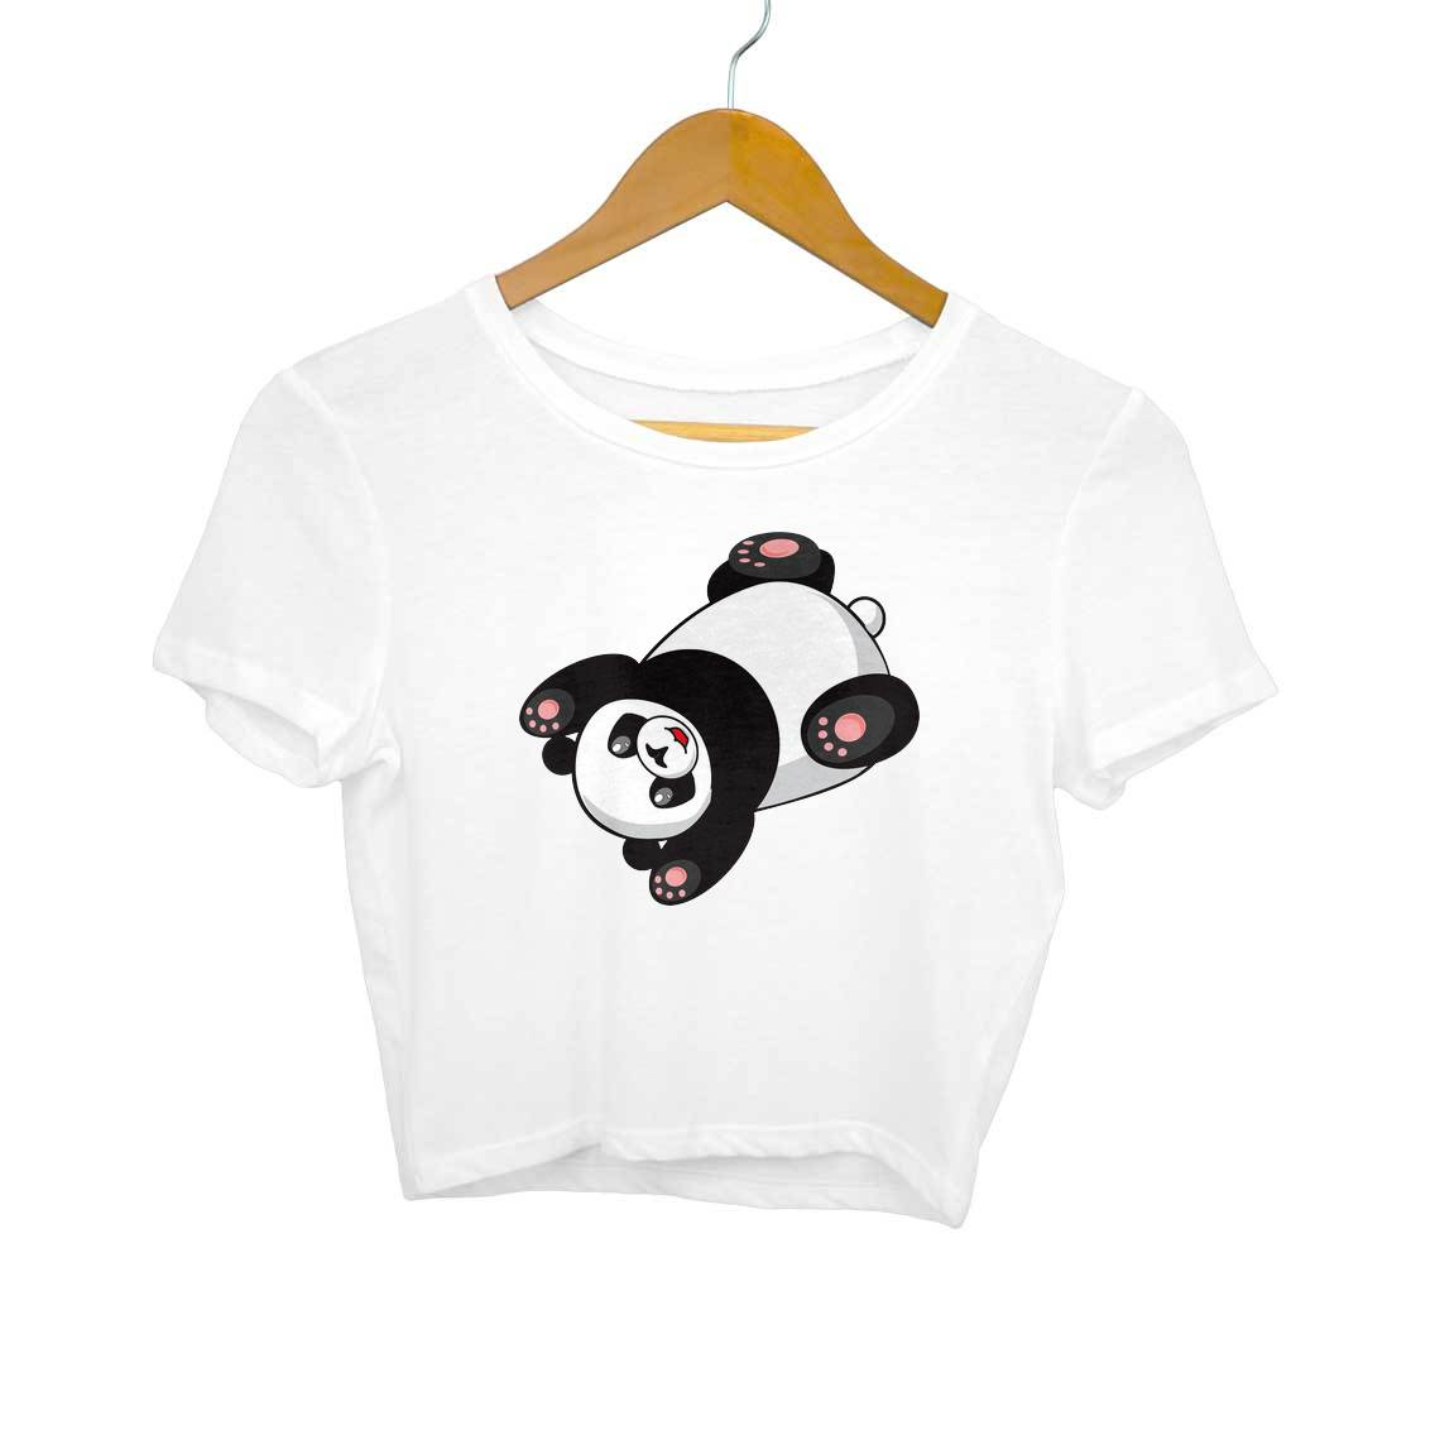 The Panda Crop Top